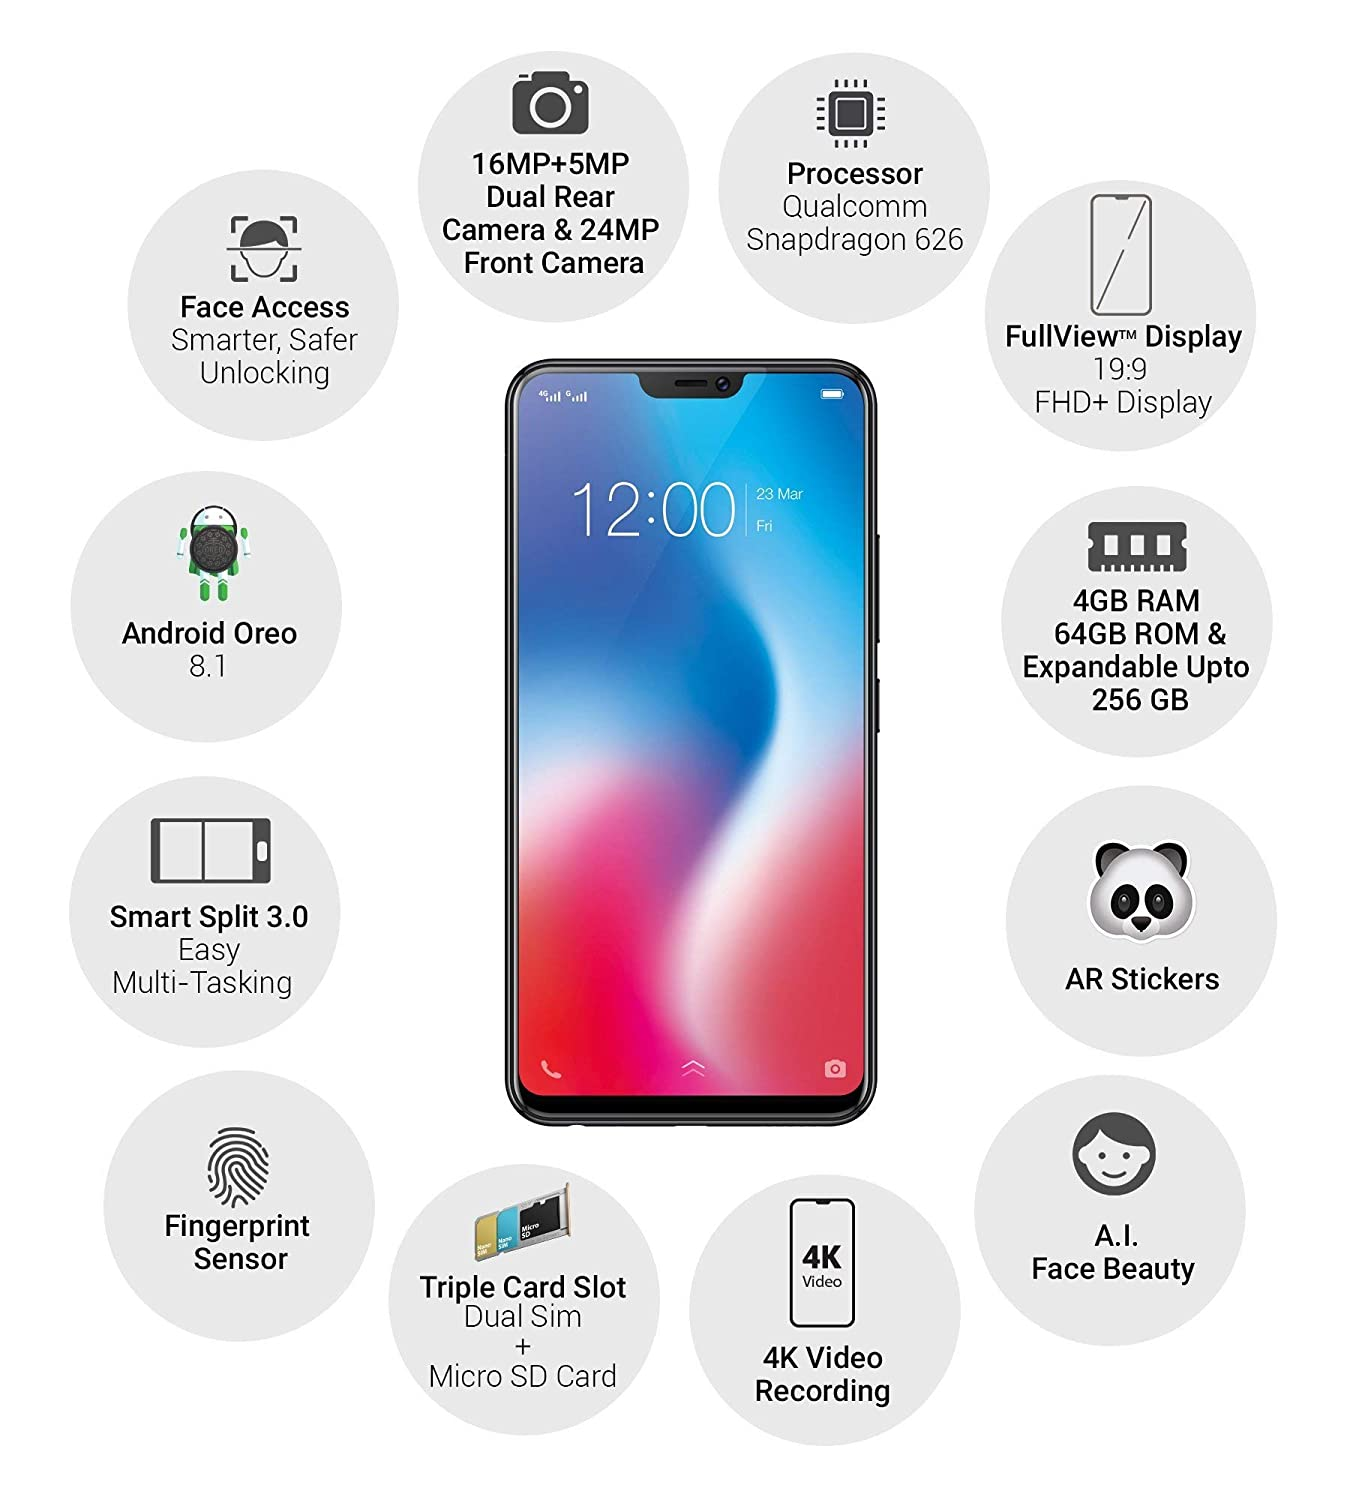 CERTIFIED REFURBISHED Vivo V9 Pearl Black 64GB Without fers Amazon Electronics